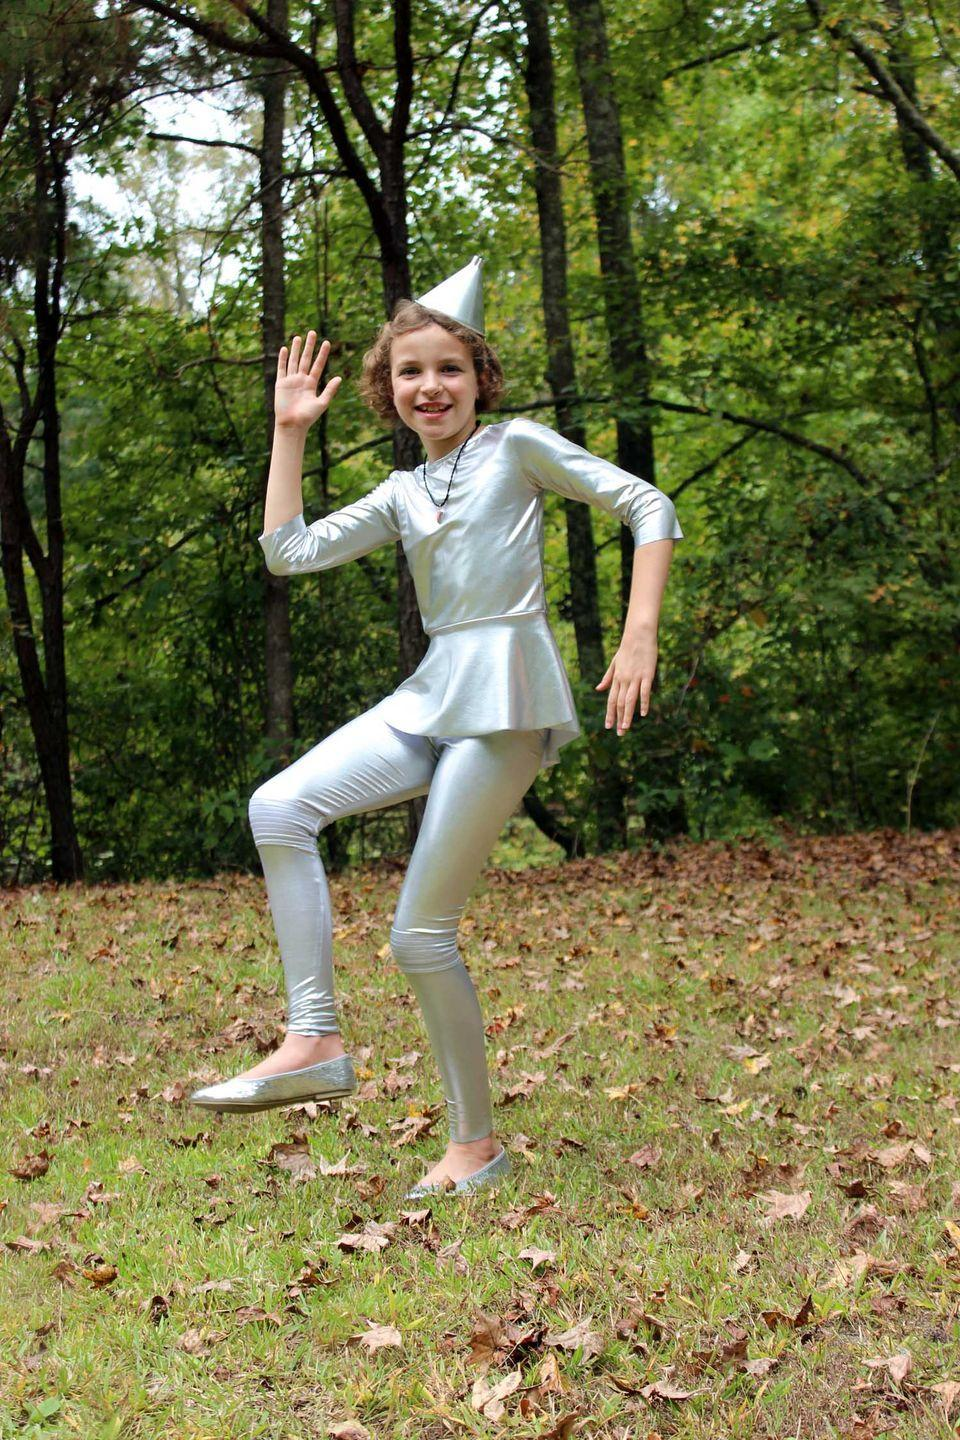 """<p>Though this blogger includes instructions for sewing a <a href=""""https://www.countryliving.com/diy-crafts/g22105023/wizard-of-oz-diy-costumes/"""" rel=""""nofollow noopener"""" target=""""_blank"""" data-ylk=""""slk:Wizard of Oz-inspired costume"""" class=""""link rapid-noclick-resp""""><em>Wizard of Oz</em>-inspired costume</a>, you could also keep it simple with silver clothing and a matching party hat!</p><p><strong>Get the tutorial at <a href=""""https://www.patternrevolution.com/blog/2017/10/9/sew-ready-for-halloween-the-tin-woman-featuring-patterns-from-love-notions-and-jacole?utm_source=feedburner&utm_medium=email&utm_campaign=Feed:+PatternRevolution+(Pattern+Revolution)"""" rel=""""nofollow noopener"""" target=""""_blank"""" data-ylk=""""slk:Pattern Revolution"""" class=""""link rapid-noclick-resp"""">Pattern Revolution</a>.</strong></p><p><strong><a class=""""link rapid-noclick-resp"""" href=""""https://www.amazon.com/Rubies-Wizard-Hoodie-Dress-Costume/dp/B00ICB9DES?tag=syn-yahoo-20&ascsubtag=%5Bartid%7C10050.g.23785711%5Bsrc%7Cyahoo-us"""" rel=""""nofollow noopener"""" target=""""_blank"""" data-ylk=""""slk:SHOP TIN MAN COSTUMES"""">SHOP TIN MAN COSTUMES</a></strong></p>"""